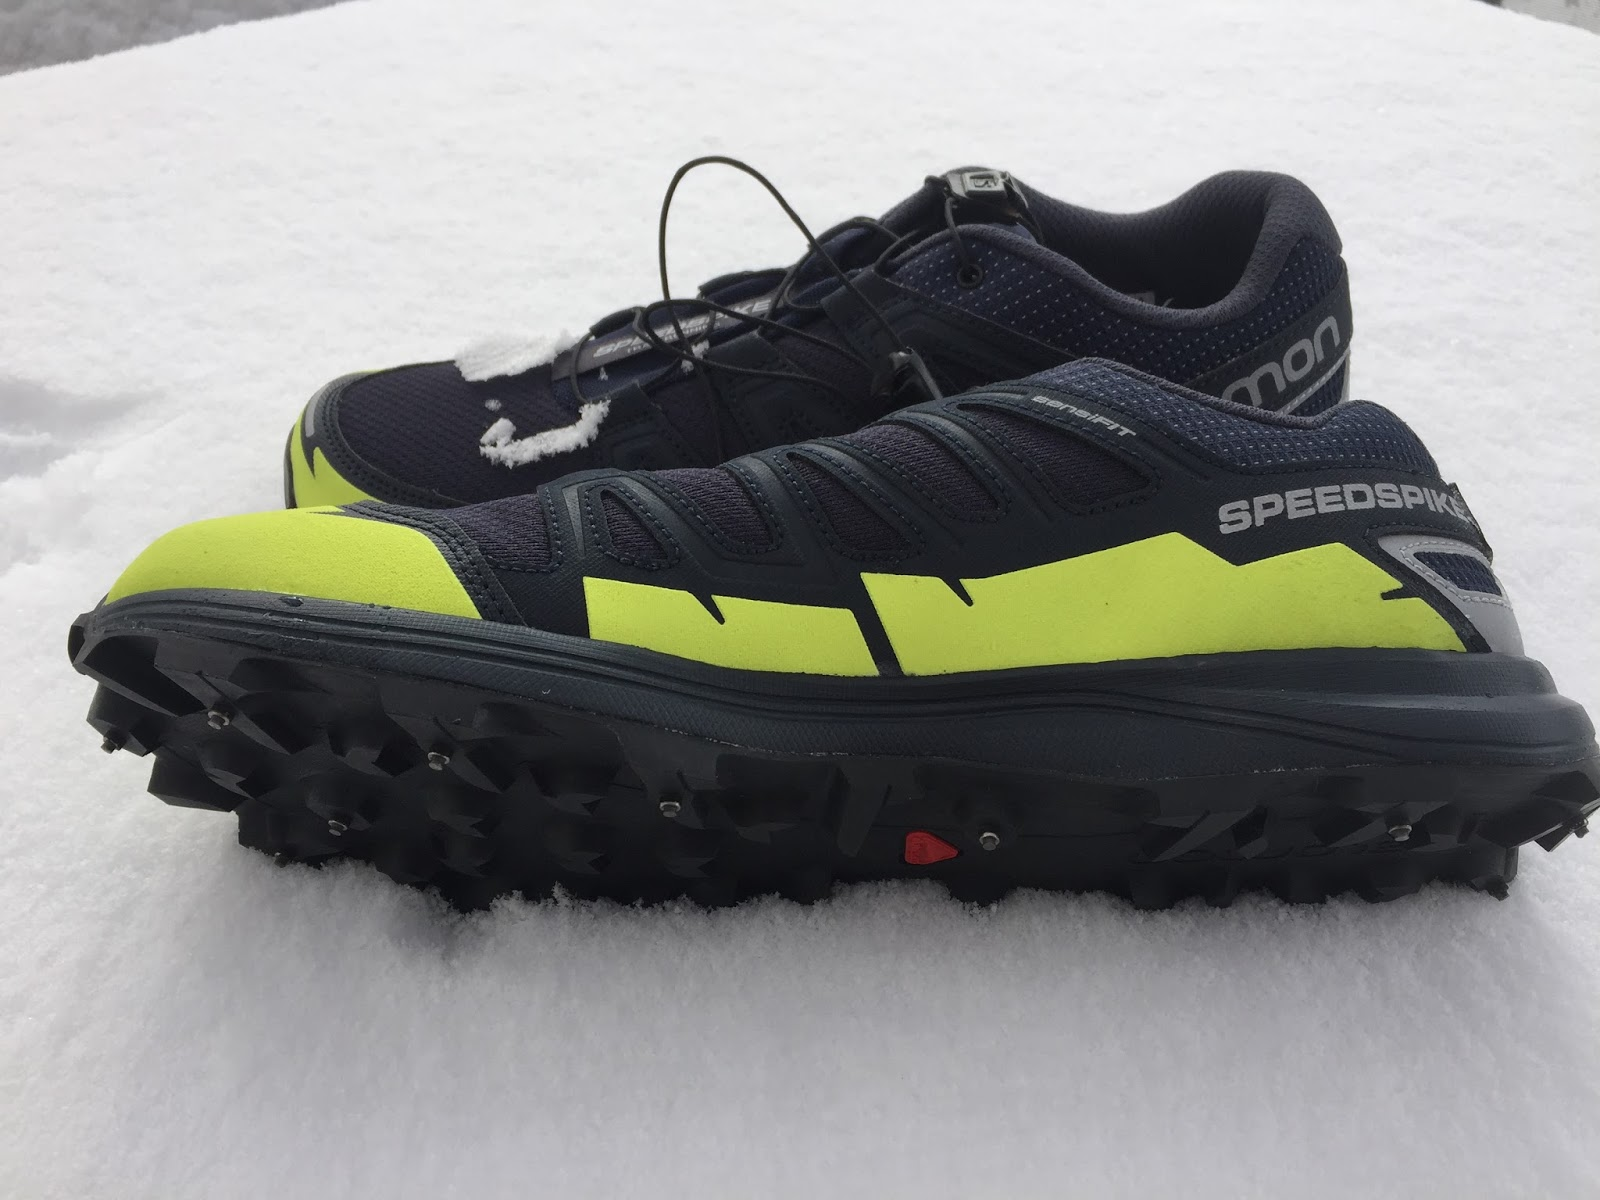 668c83ef1652 Road Trail Run  Salomon Speedspike CS Review  For gnarly snowy